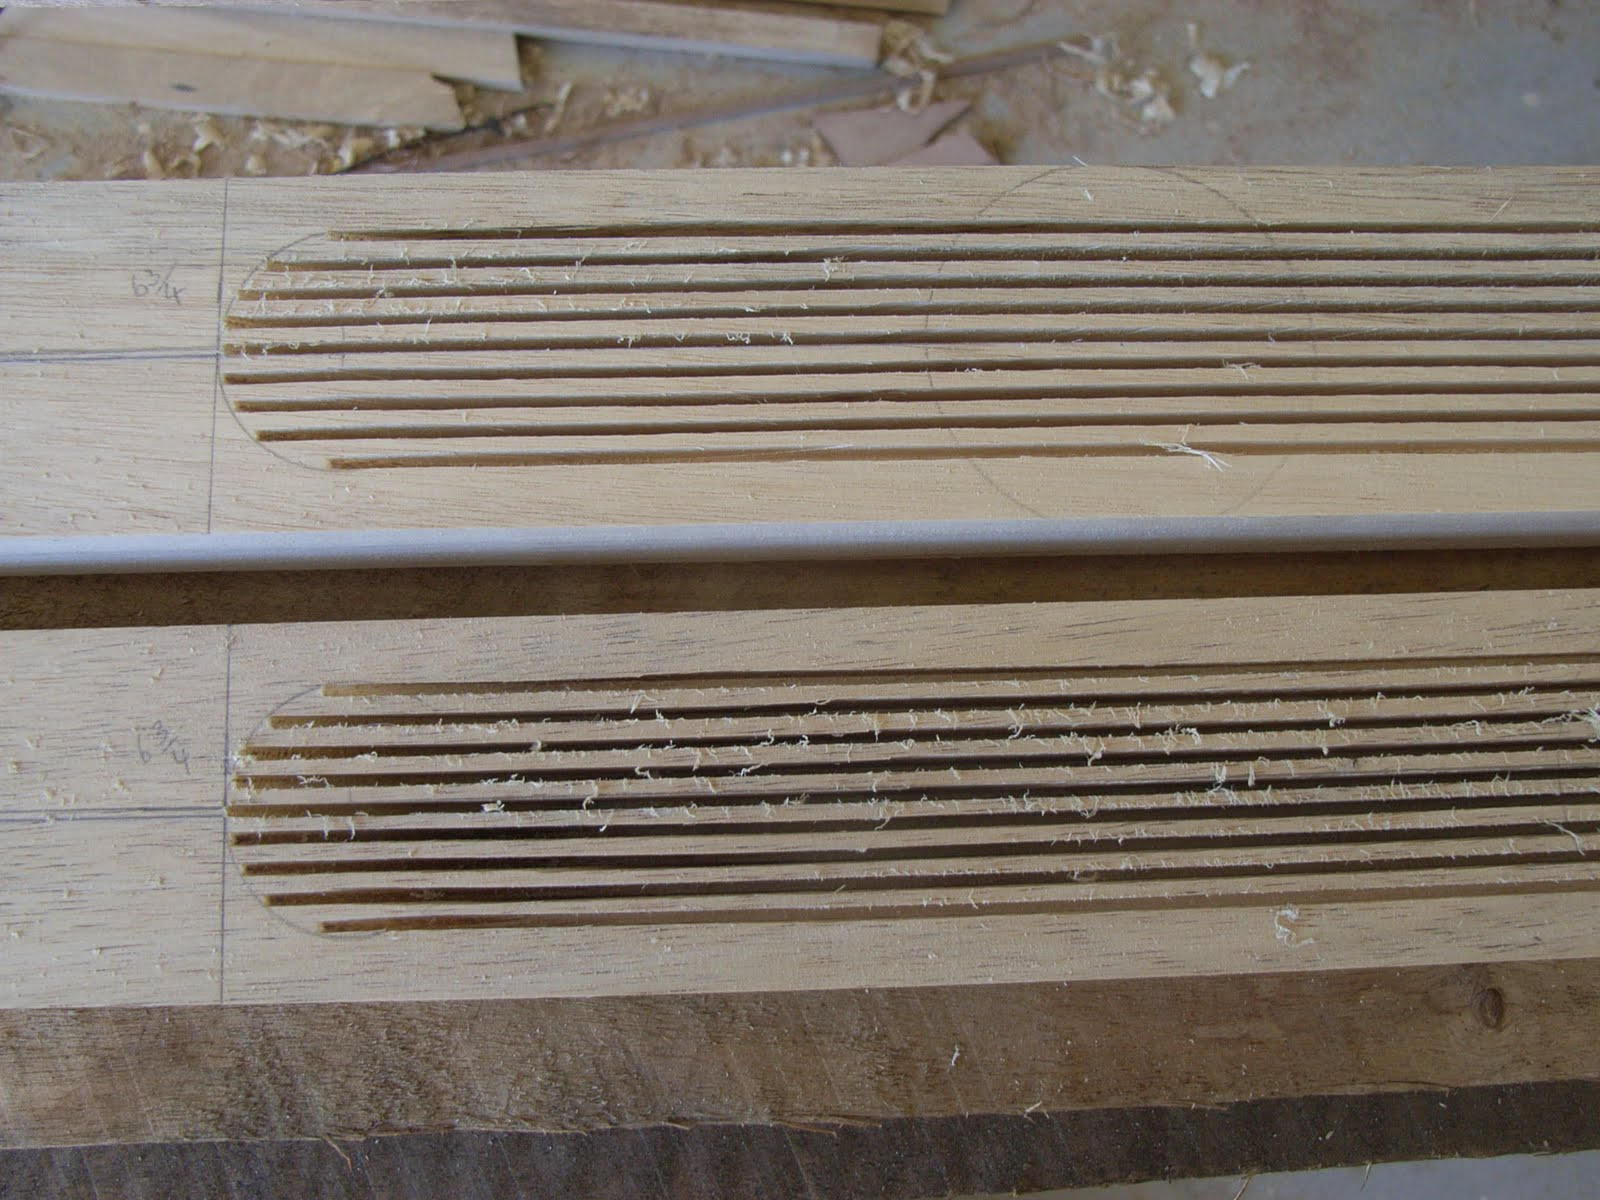 Homemade Wooden Boats - Viewing Gallery